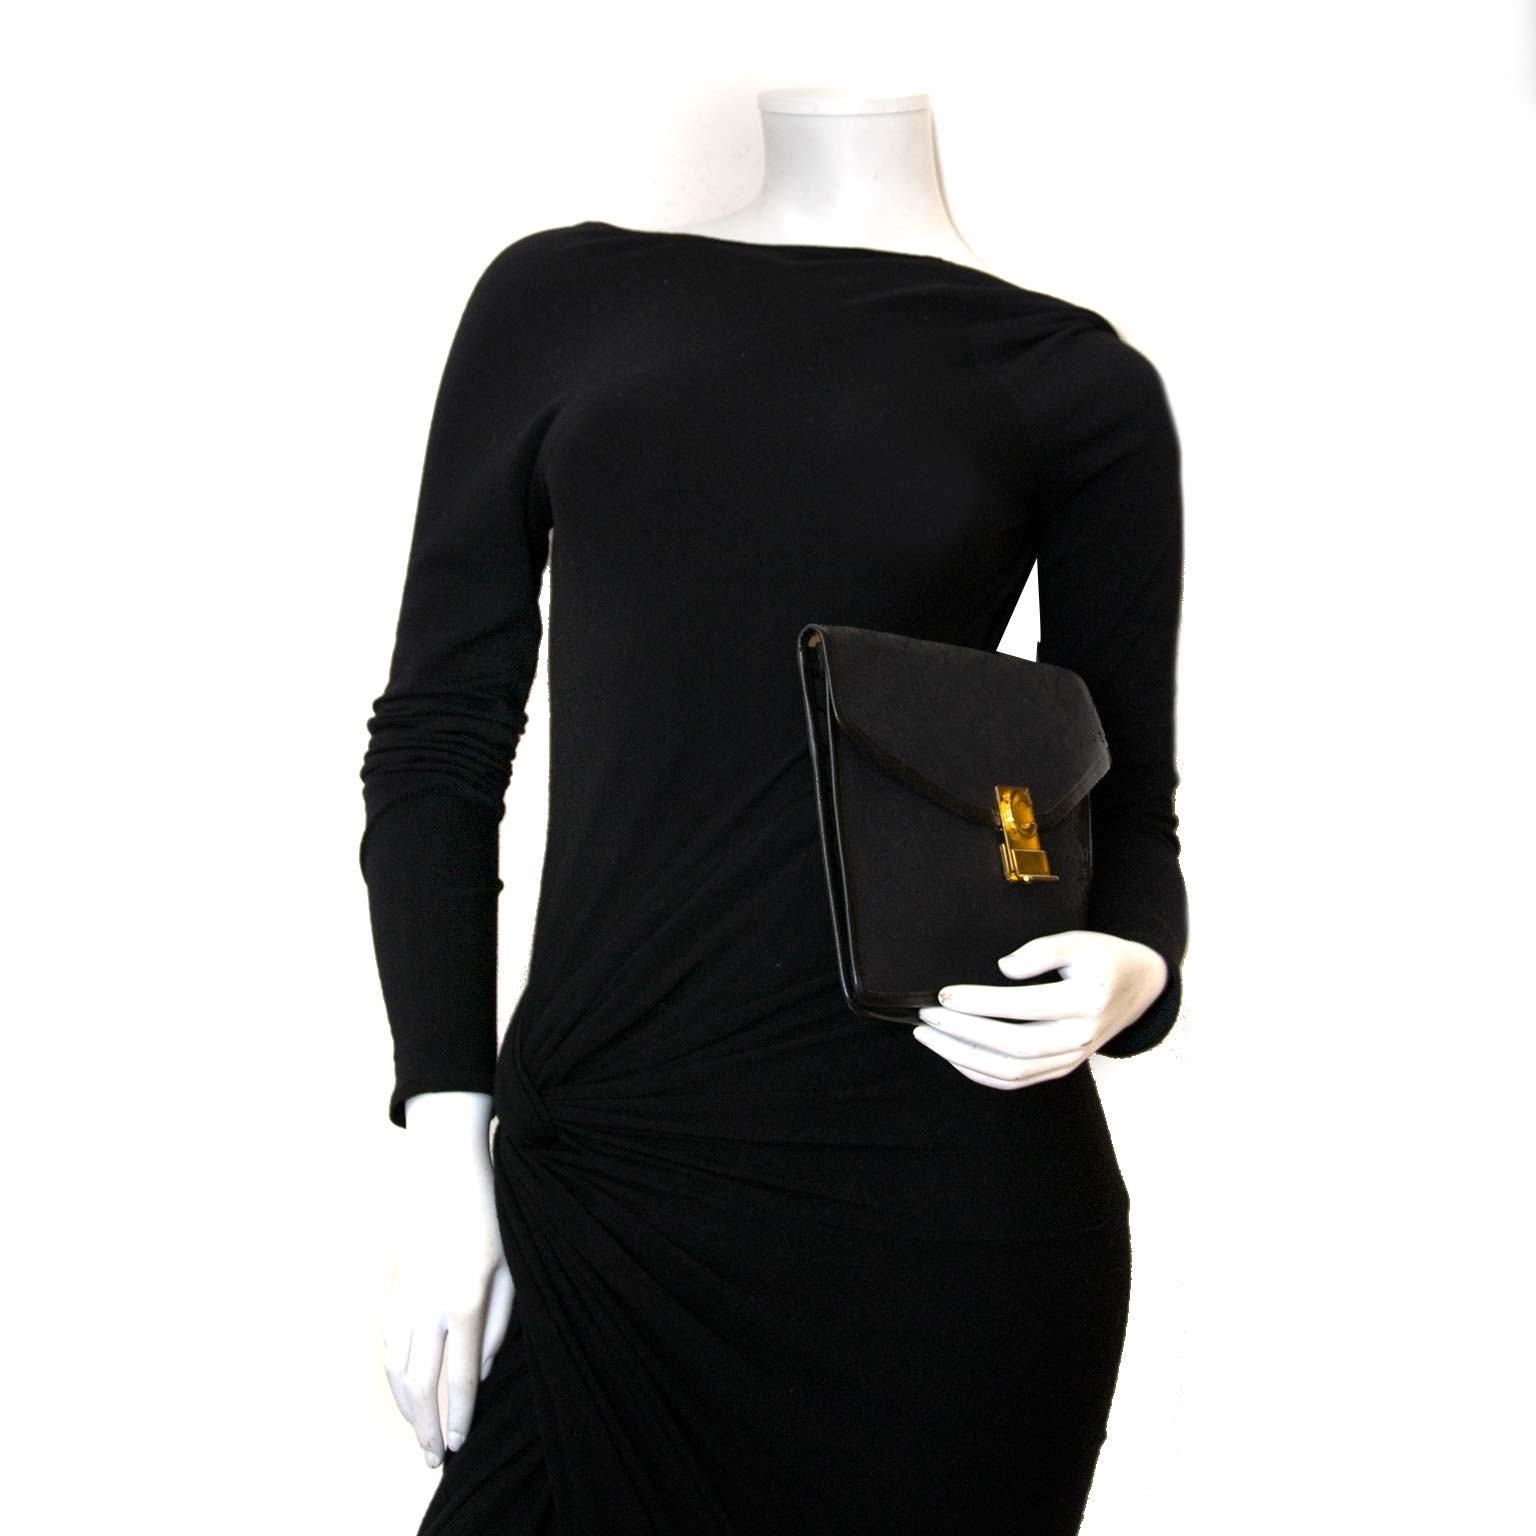 céline paris black monogram clutch now for sale at labellov vintage fashion webshop belgium